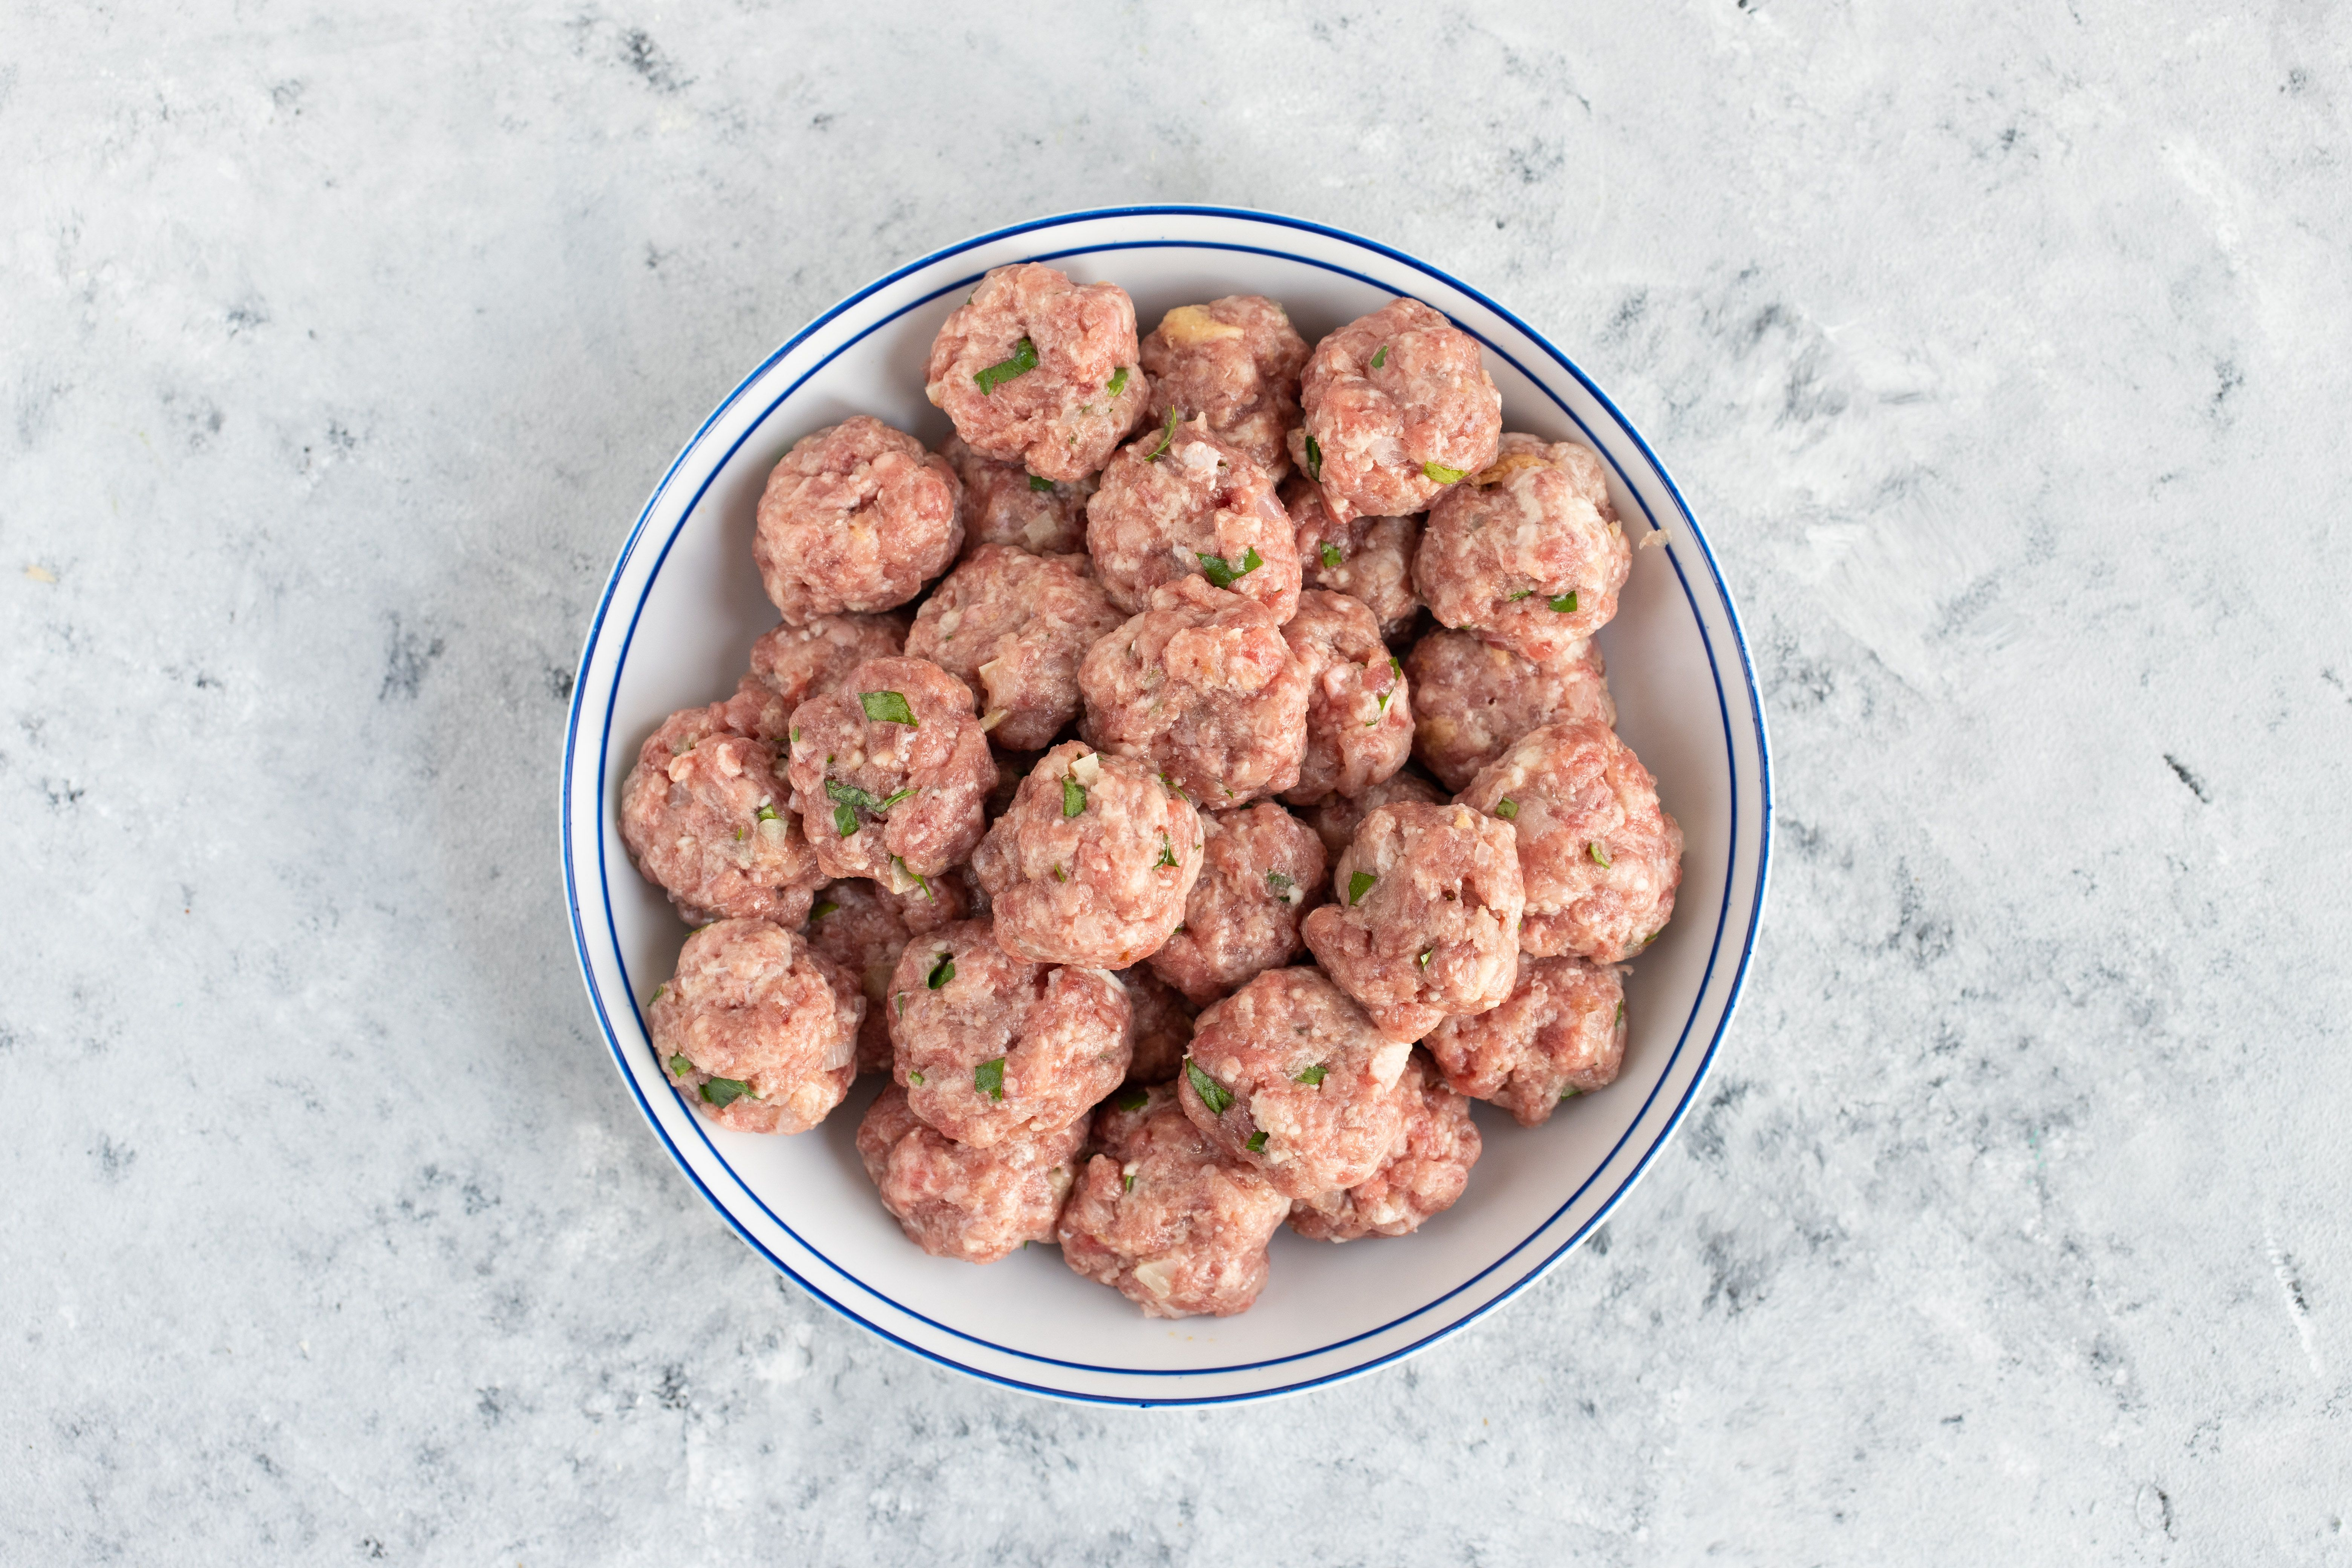 Formed meatballs in a bowl